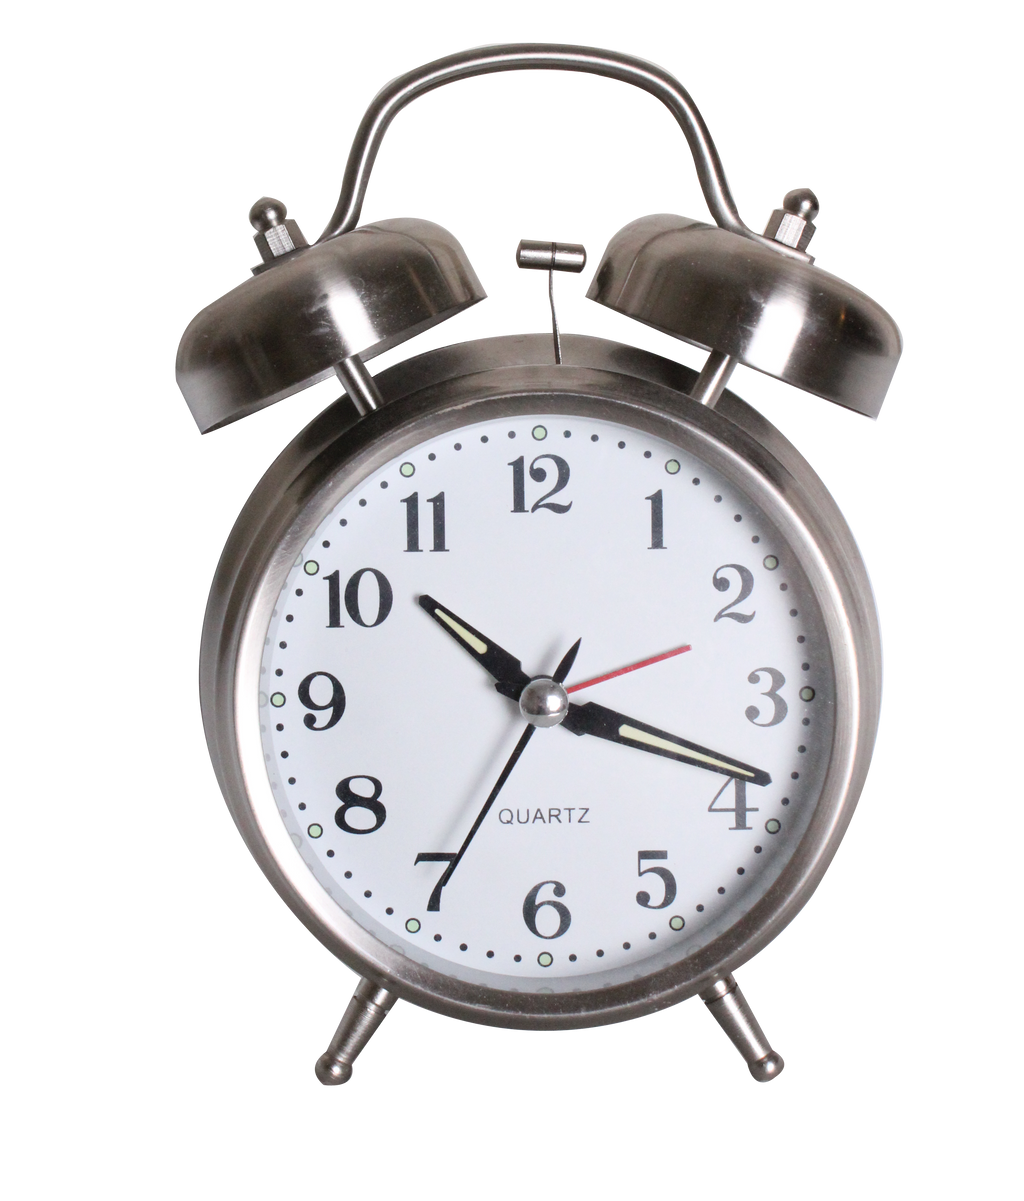 Vintage Alarm Clock Stock   461590617 on alarm clock wallpaper